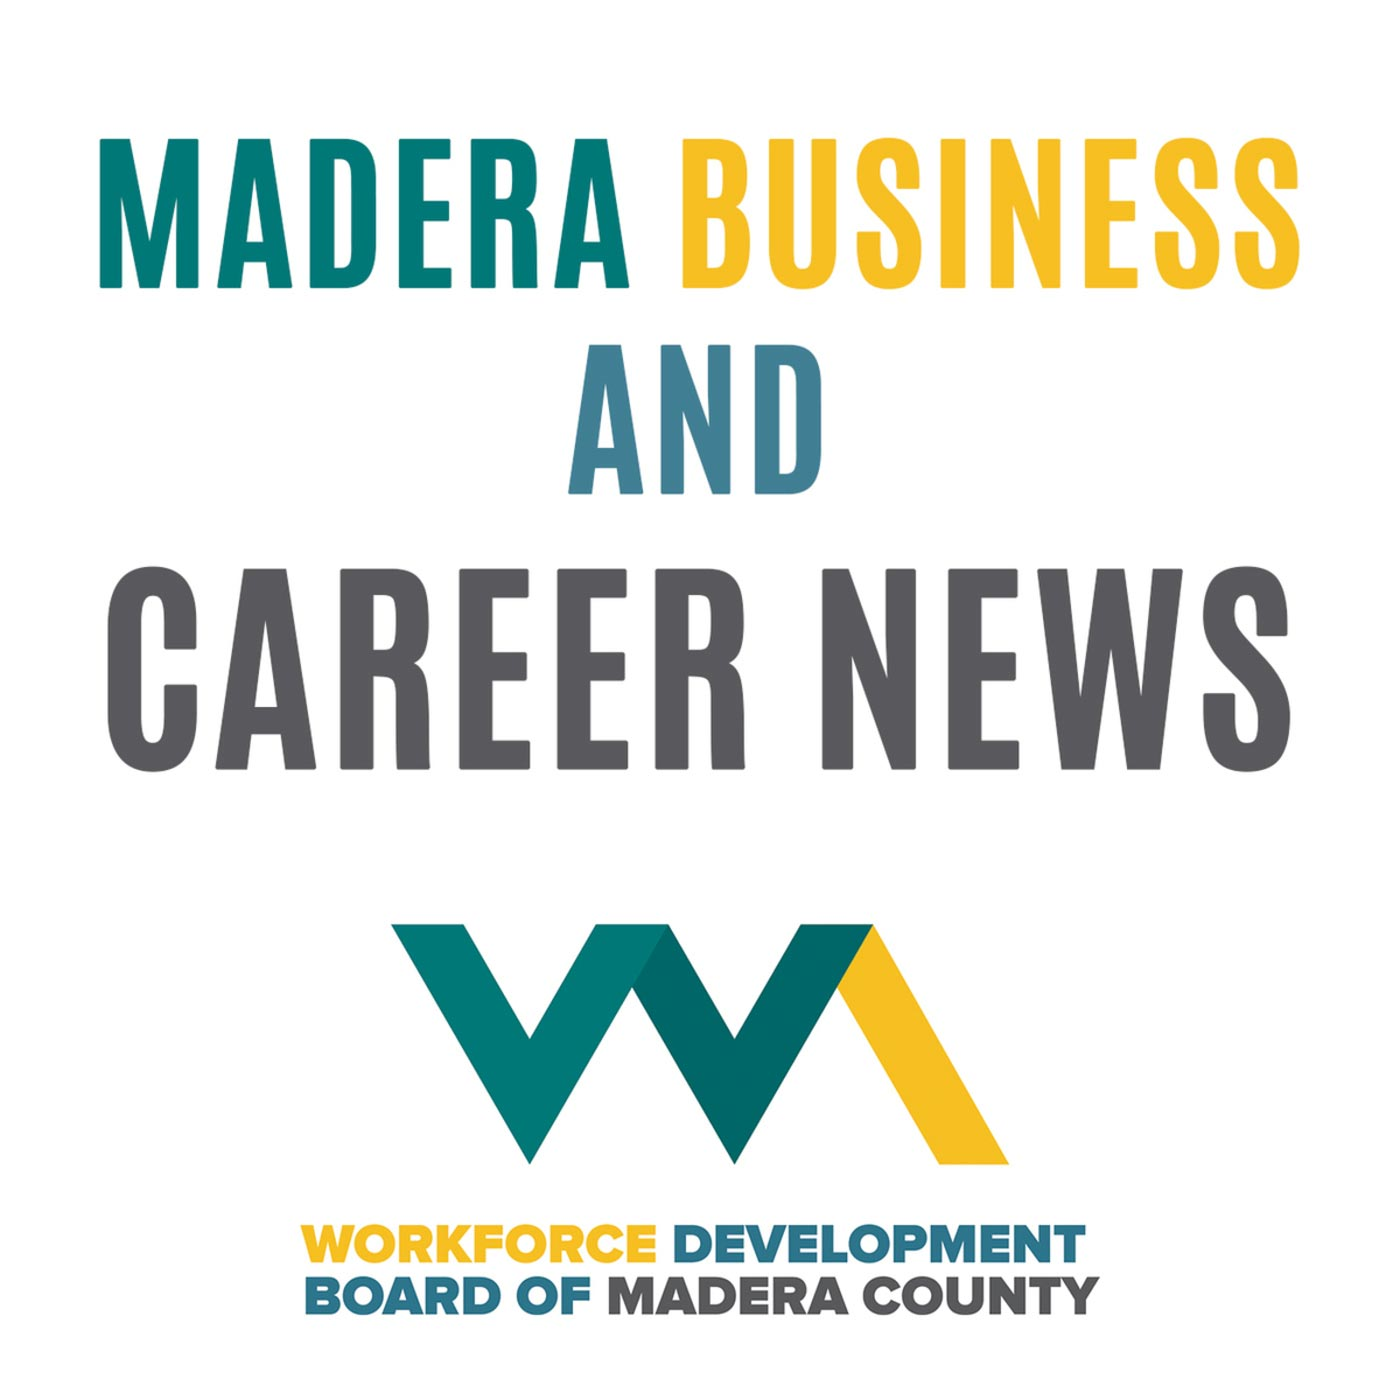 Madera Business and Career News